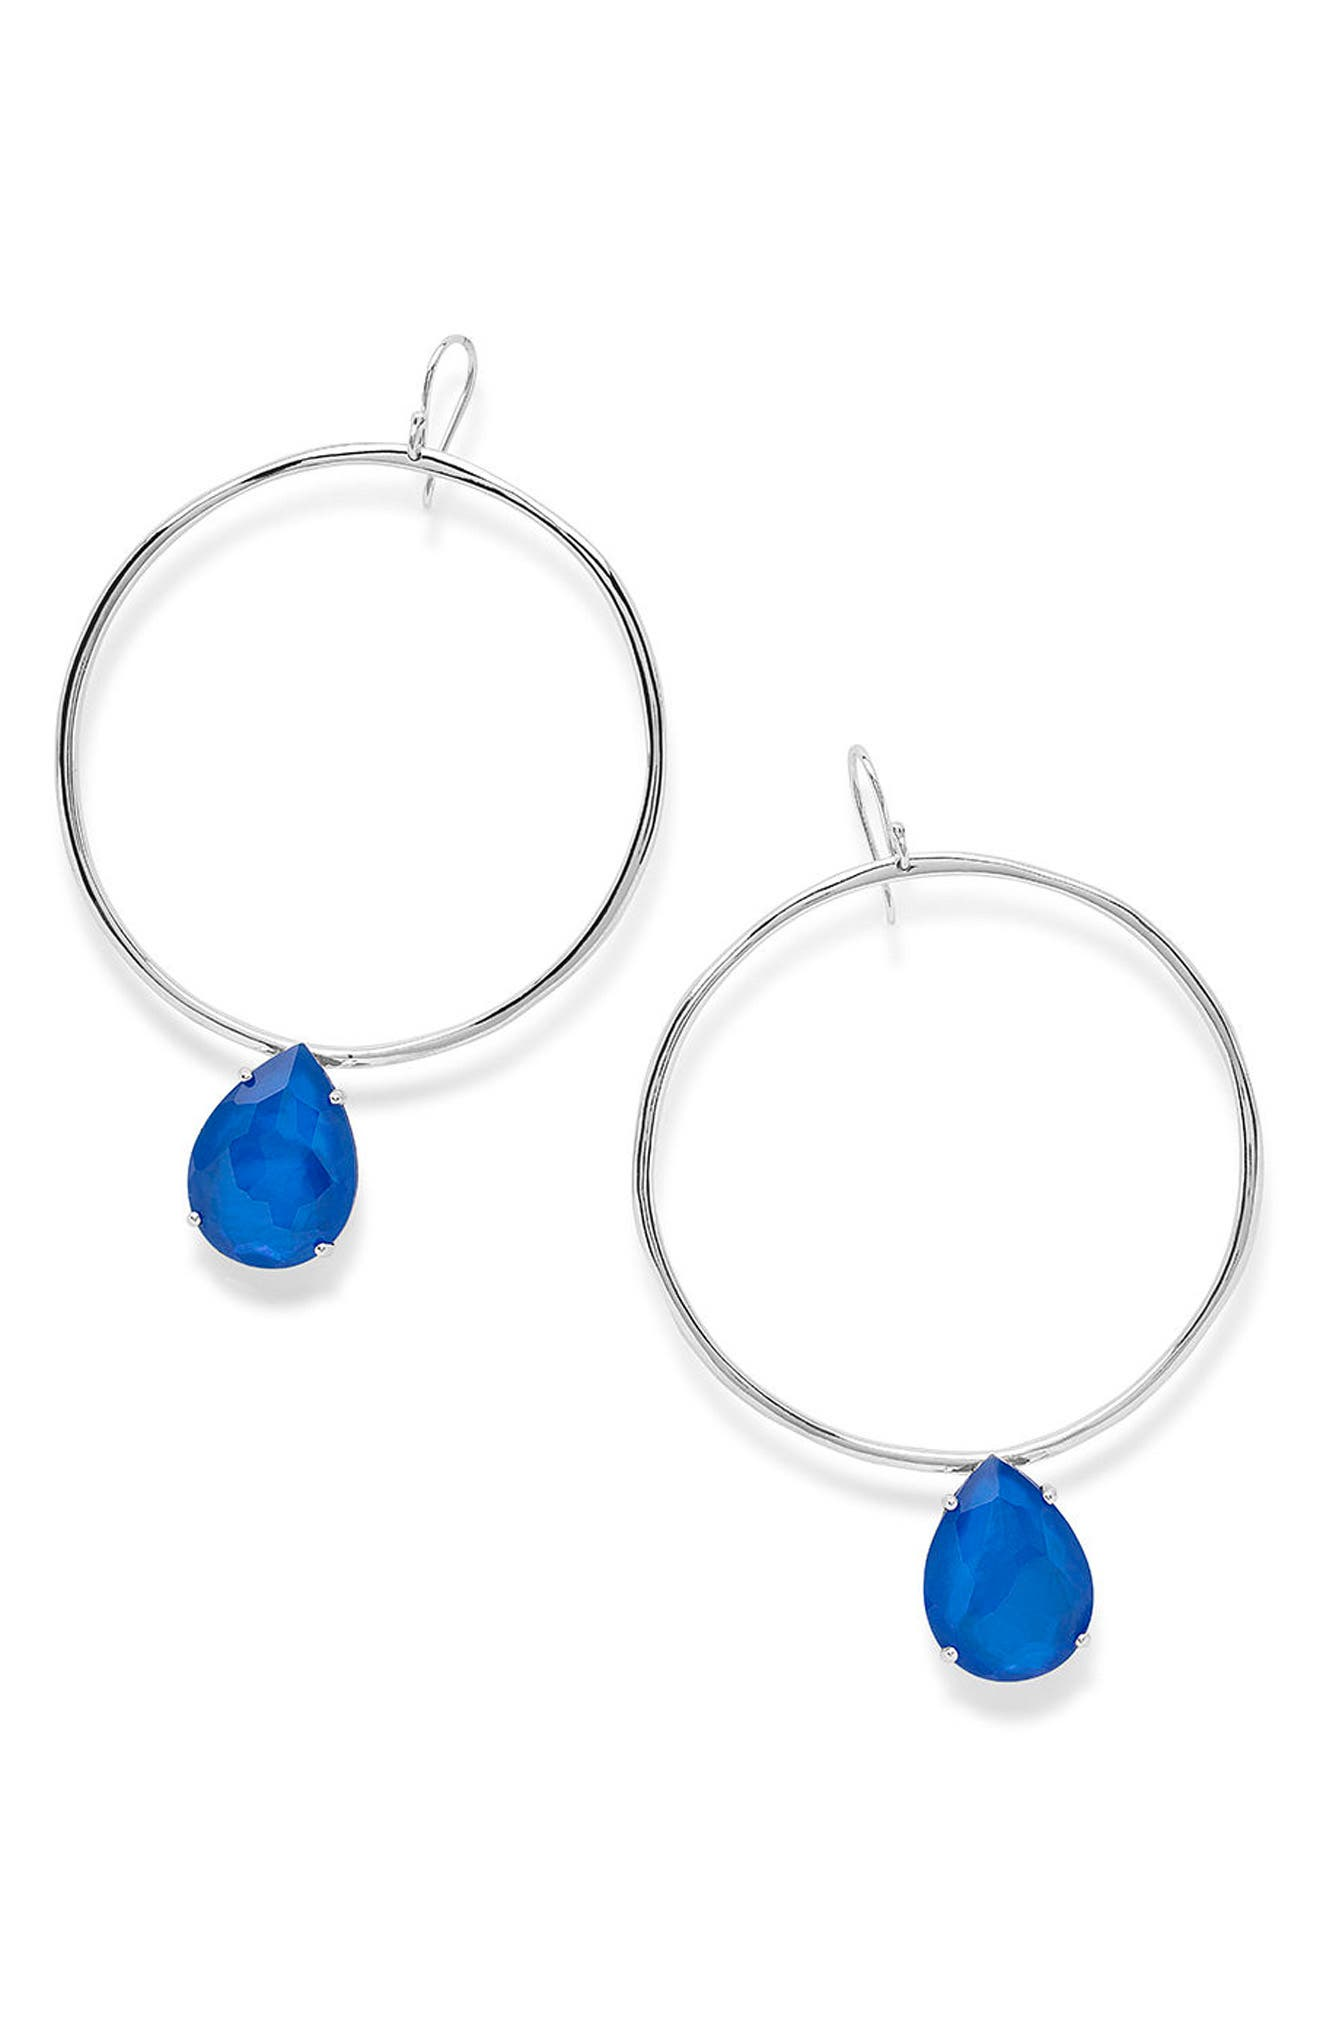 Wonderland Large Frontal Hoop Earrings,                             Main thumbnail 1, color,                             400